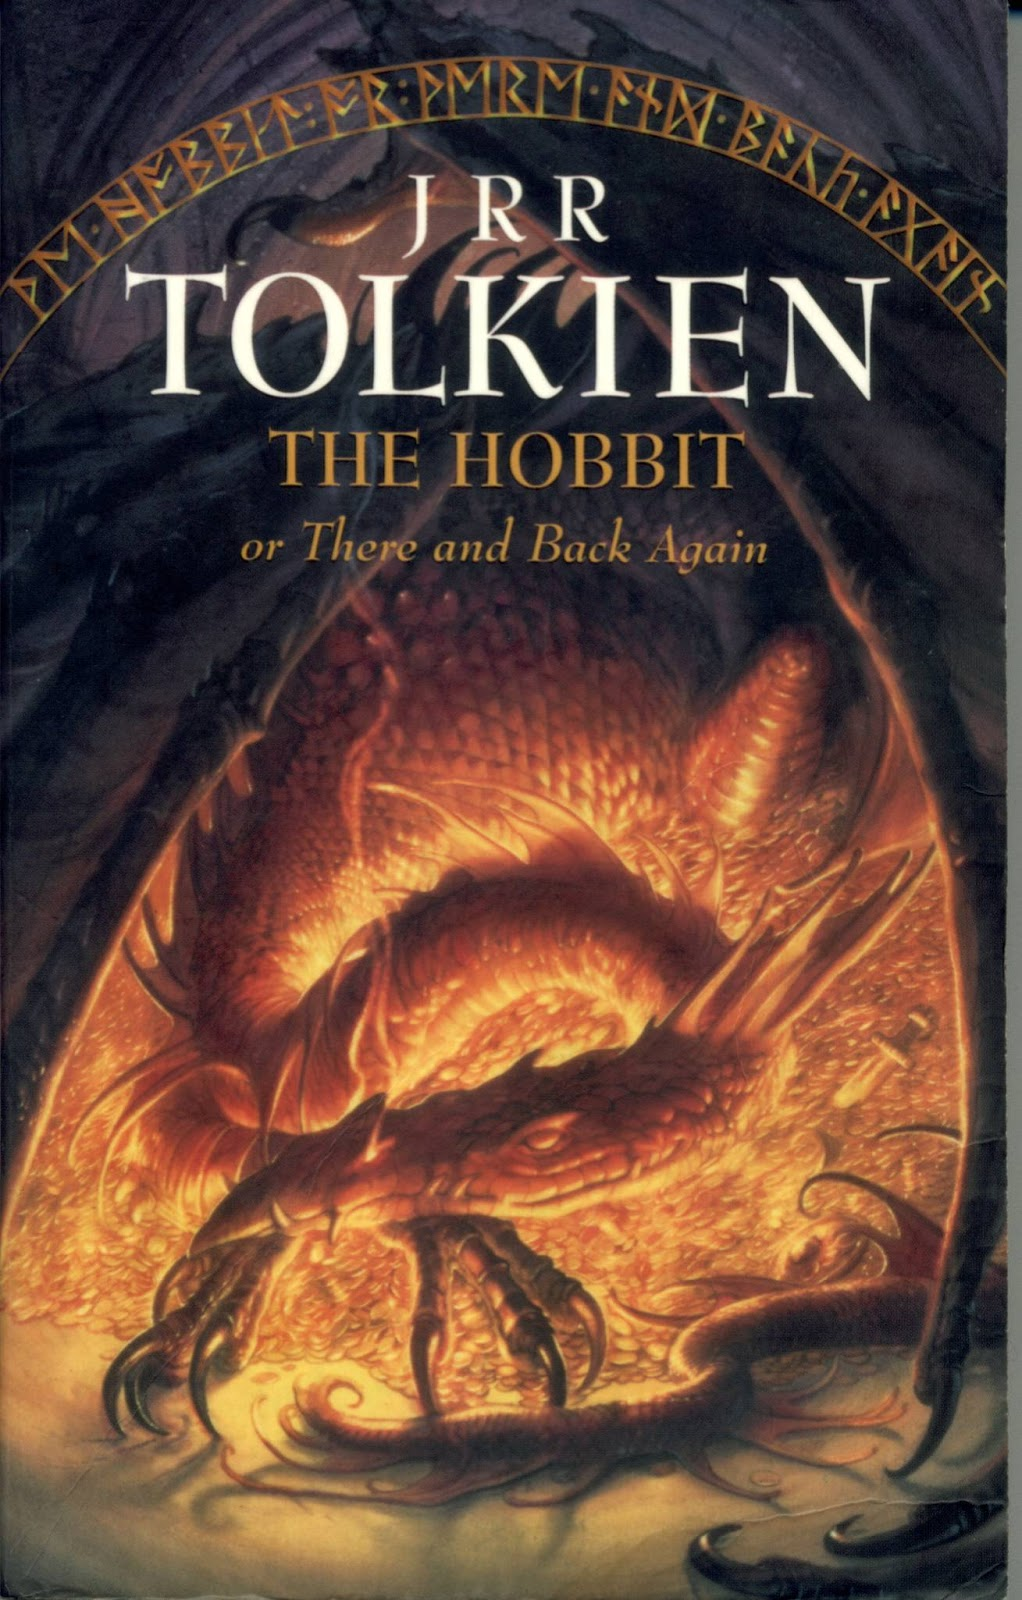 an analysis of the book the hobbit by j r r tolkien The hobbit = there and back again, jrr tolkien the hobbit, or there and back again is a children's fantasy novel by english author j r r tolkien it was published on 21 september 1937 to wide critical acclaim, being nominated for the carnegie medal and awarded a prize from the new york herald tribune for best juvenile fiction.